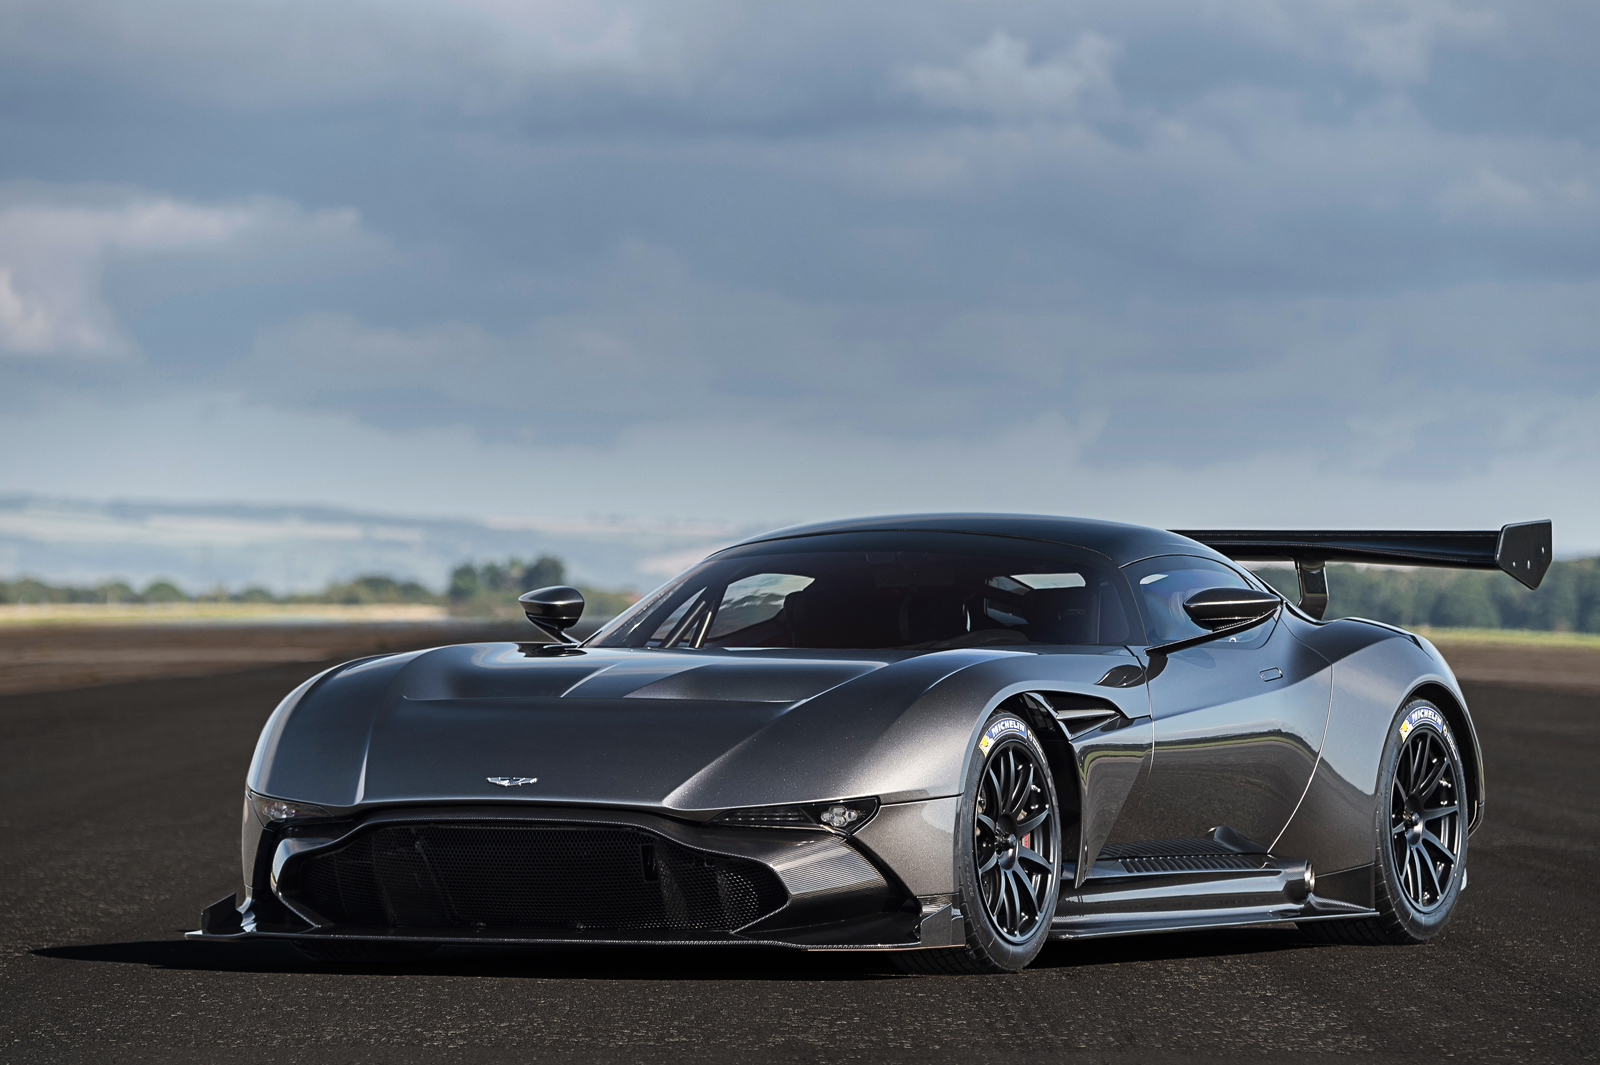 there's an aston martin vulcan available for $3.4m